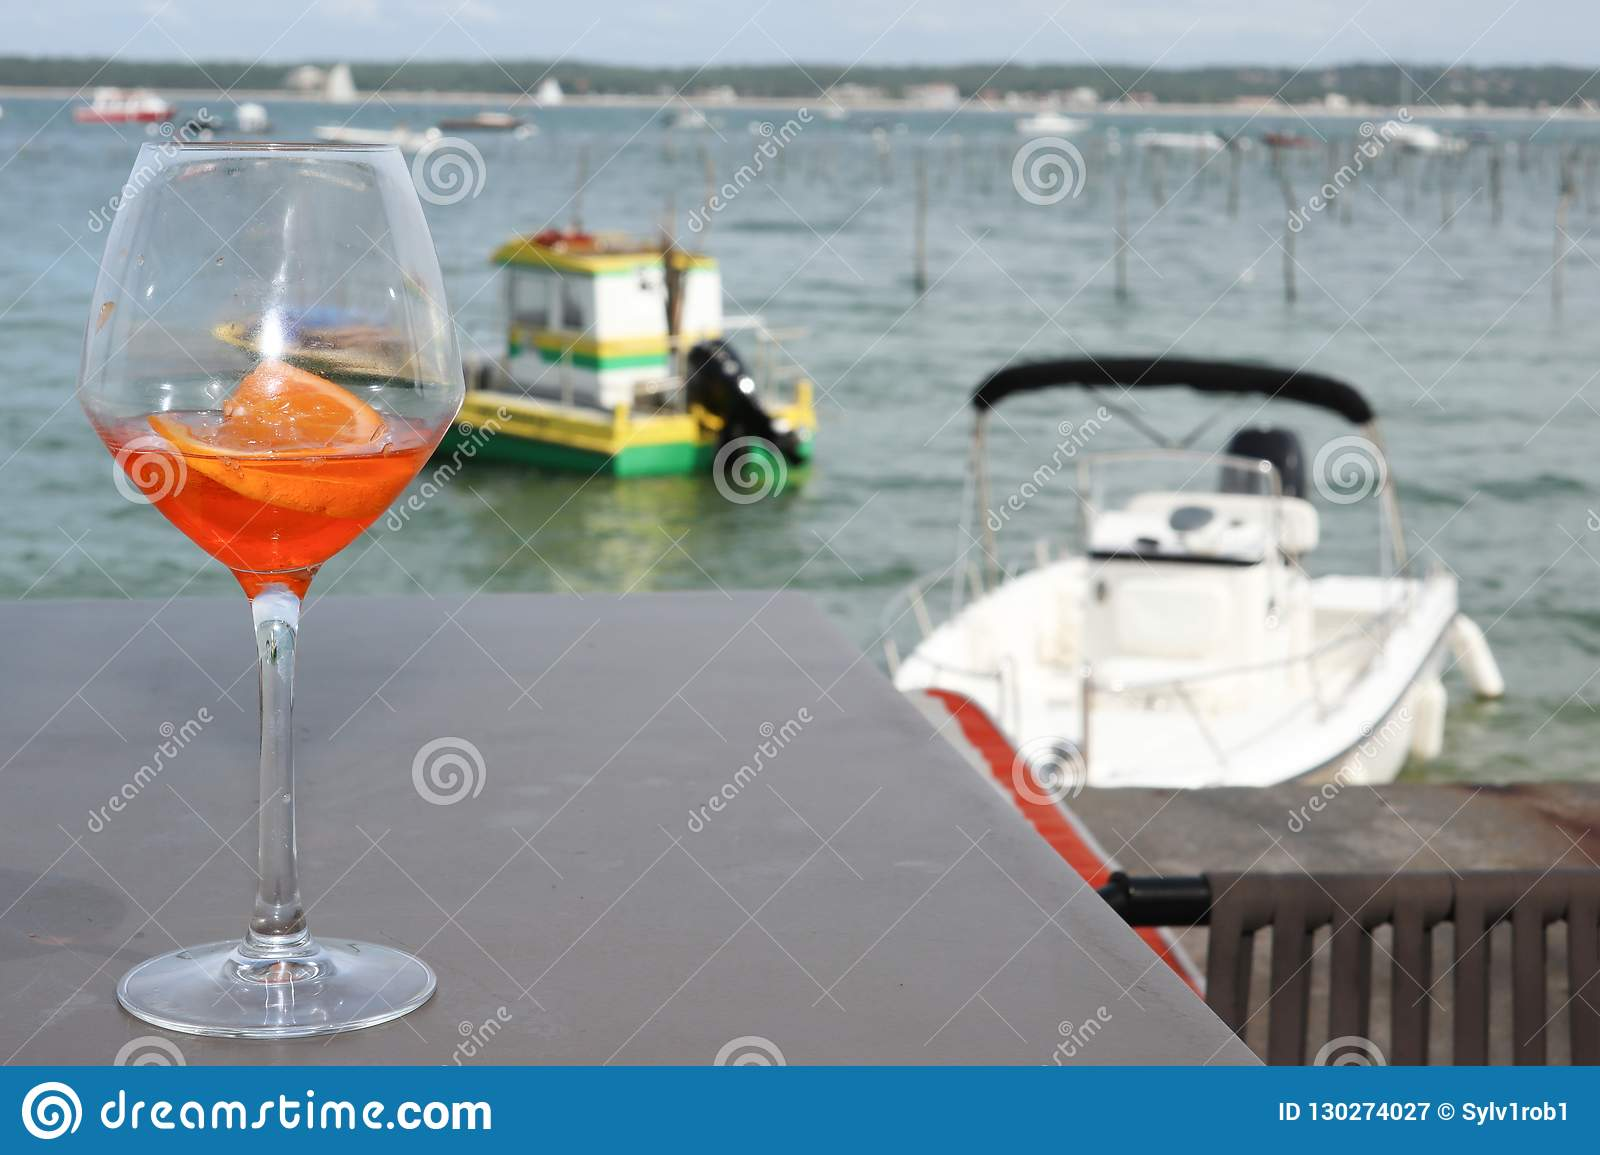 terrace at the beach at Cap Ferret in Arcachon, France with a glass of wine and local boat